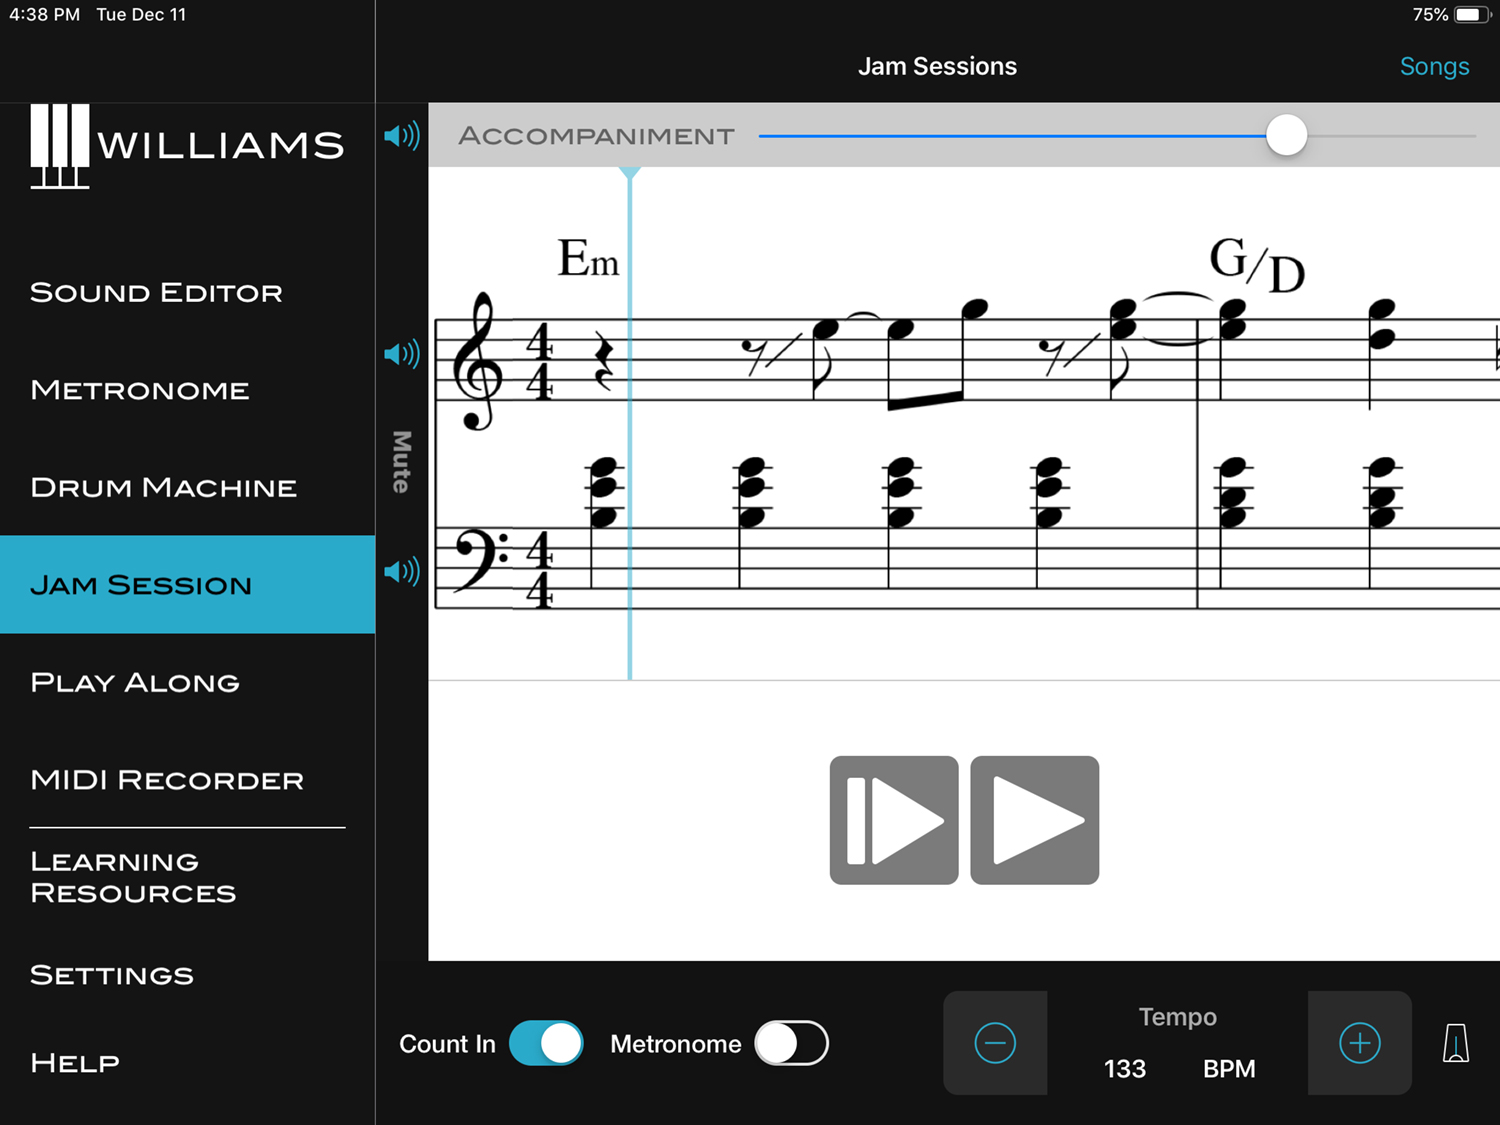 Williams App Sound Editor Jam Session